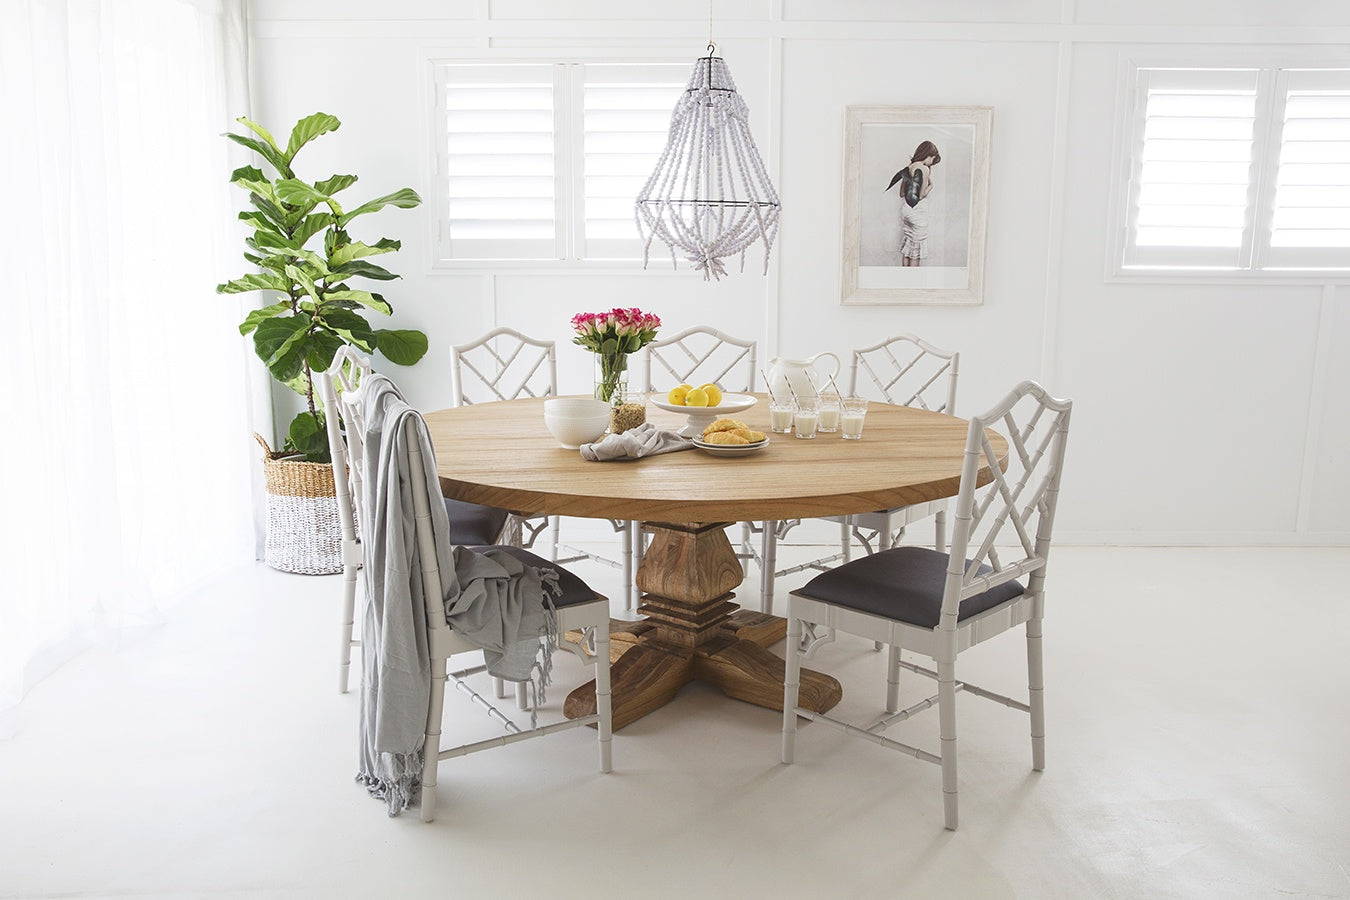 Newport Round Pedestal Dining Table 1 8m 8 10 Seater Cosy Cribs